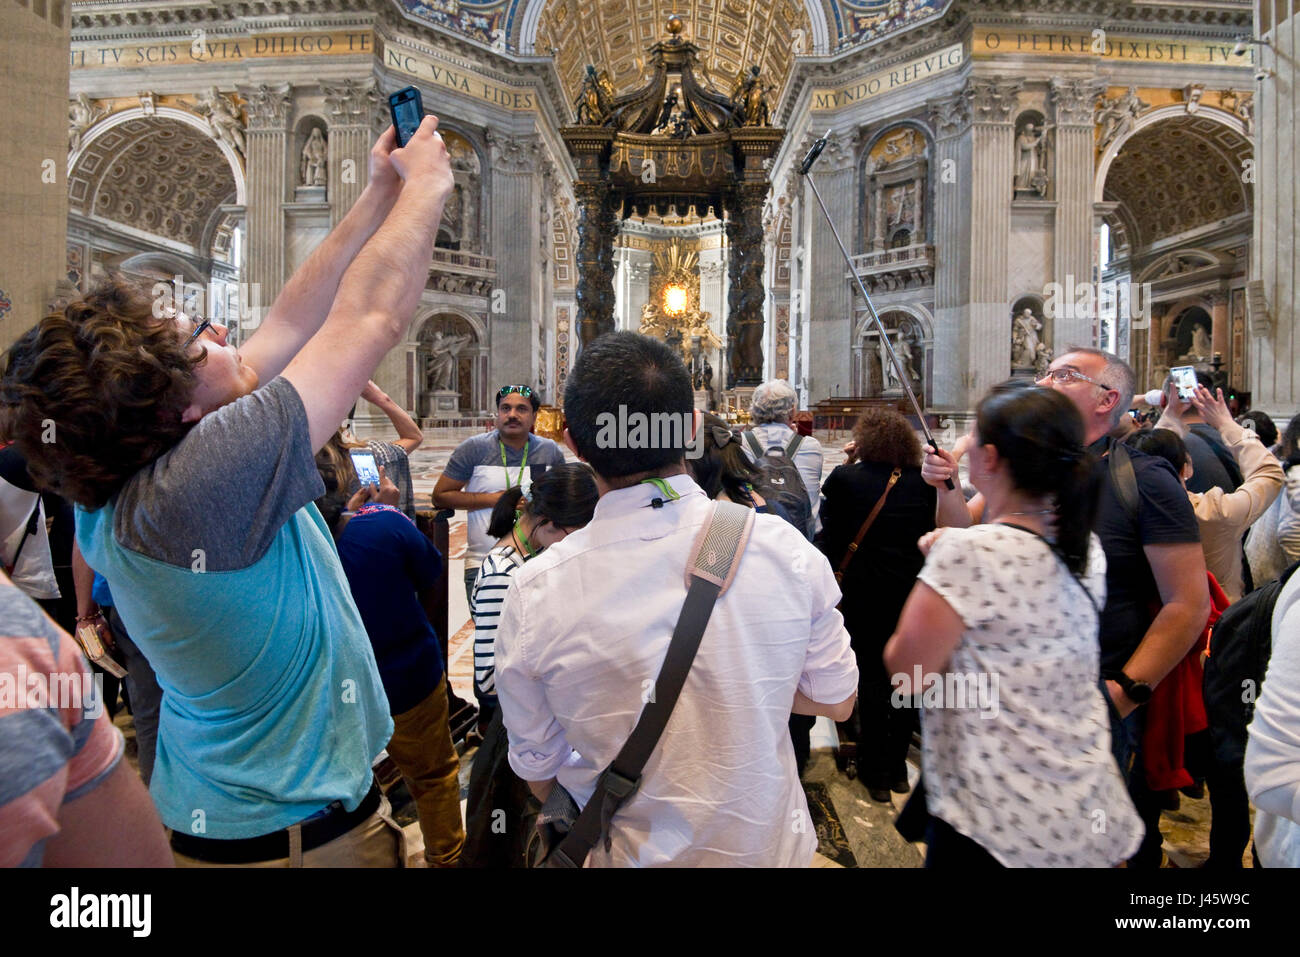 A wide angle interior view inside St Peter's Basilica of the main alter and crowds of tourists and visitors - Stock Image